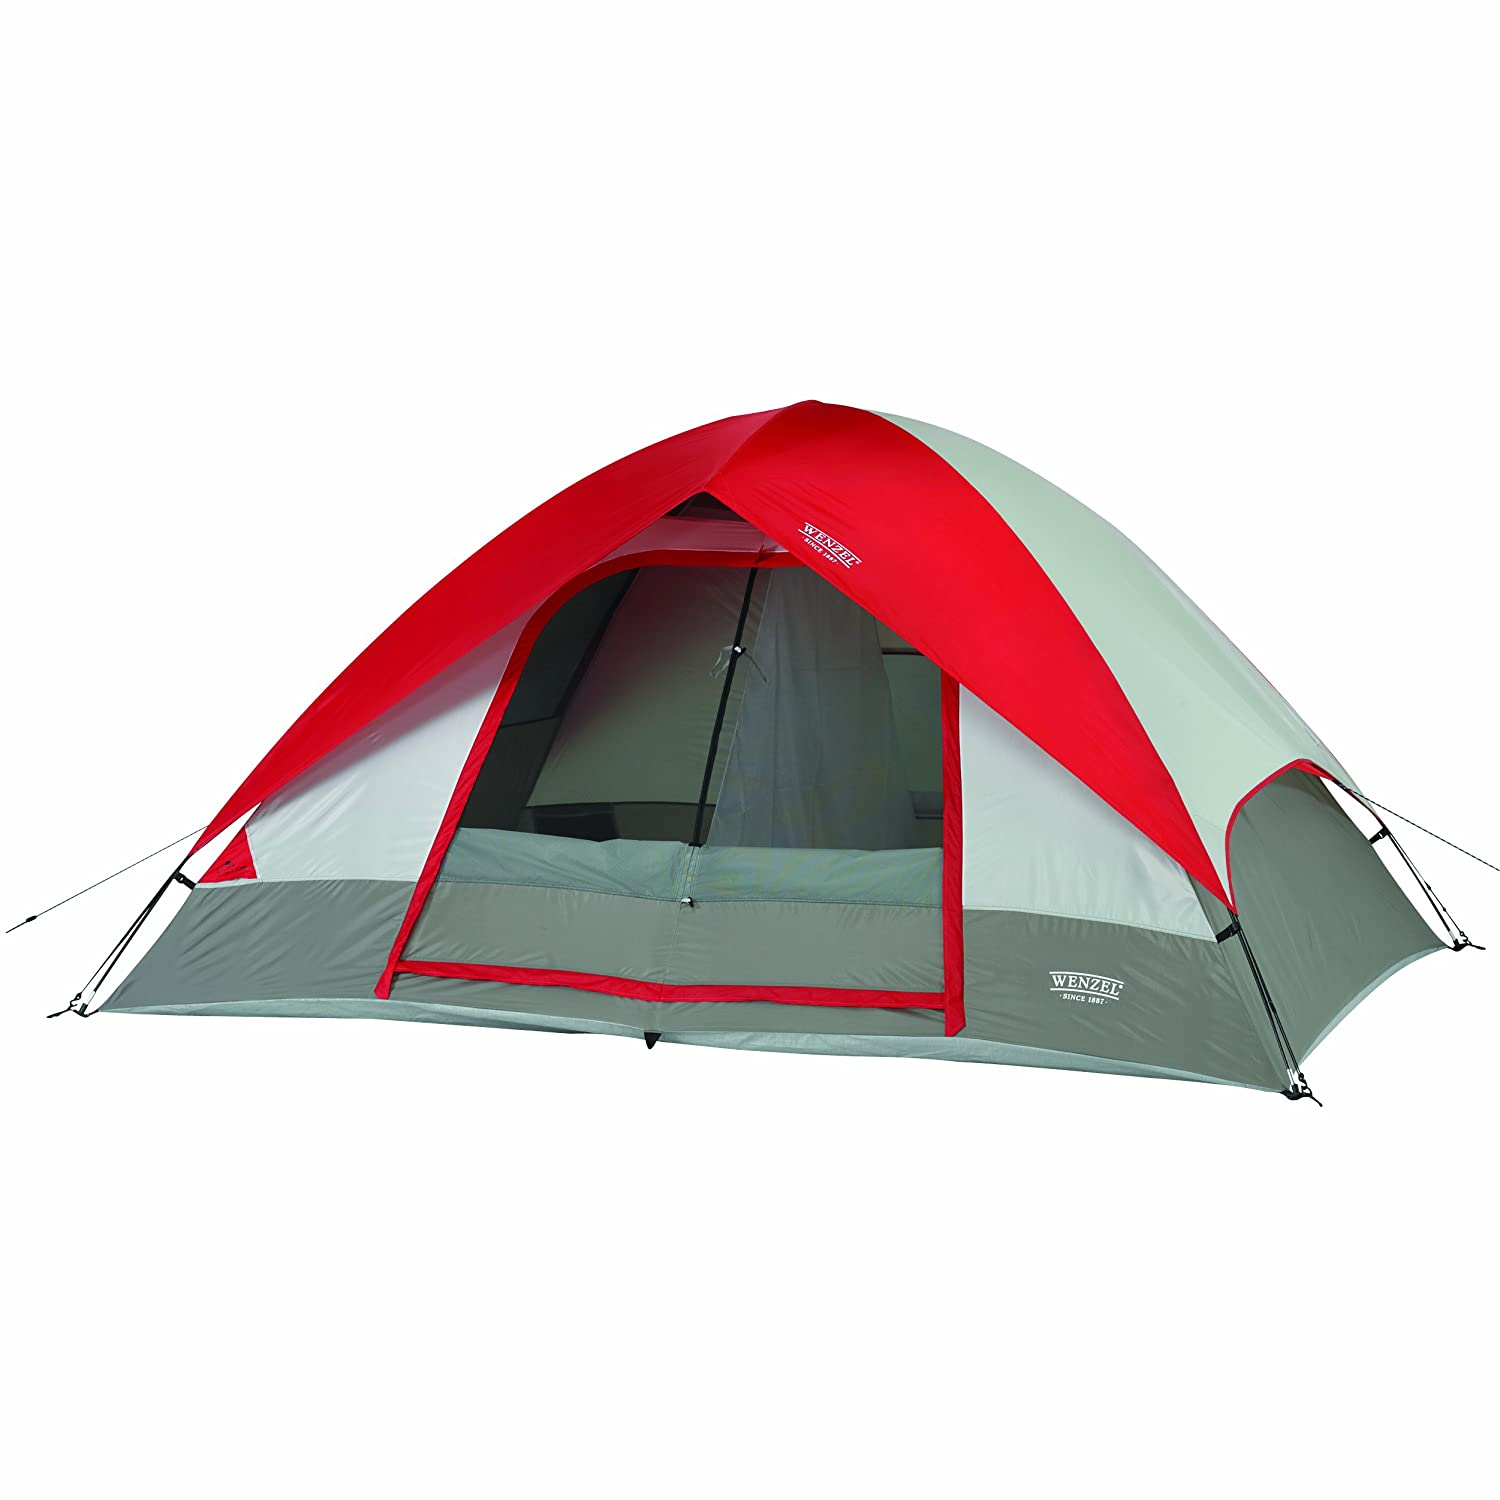 Amazon.com  Wenzel Pine Ridge Family Tent Blue 5 Person  Sports u0026 Outdoors  sc 1 st  Amazon.com & Amazon.com : Wenzel Pine Ridge Family Tent Blue 5 Person ...